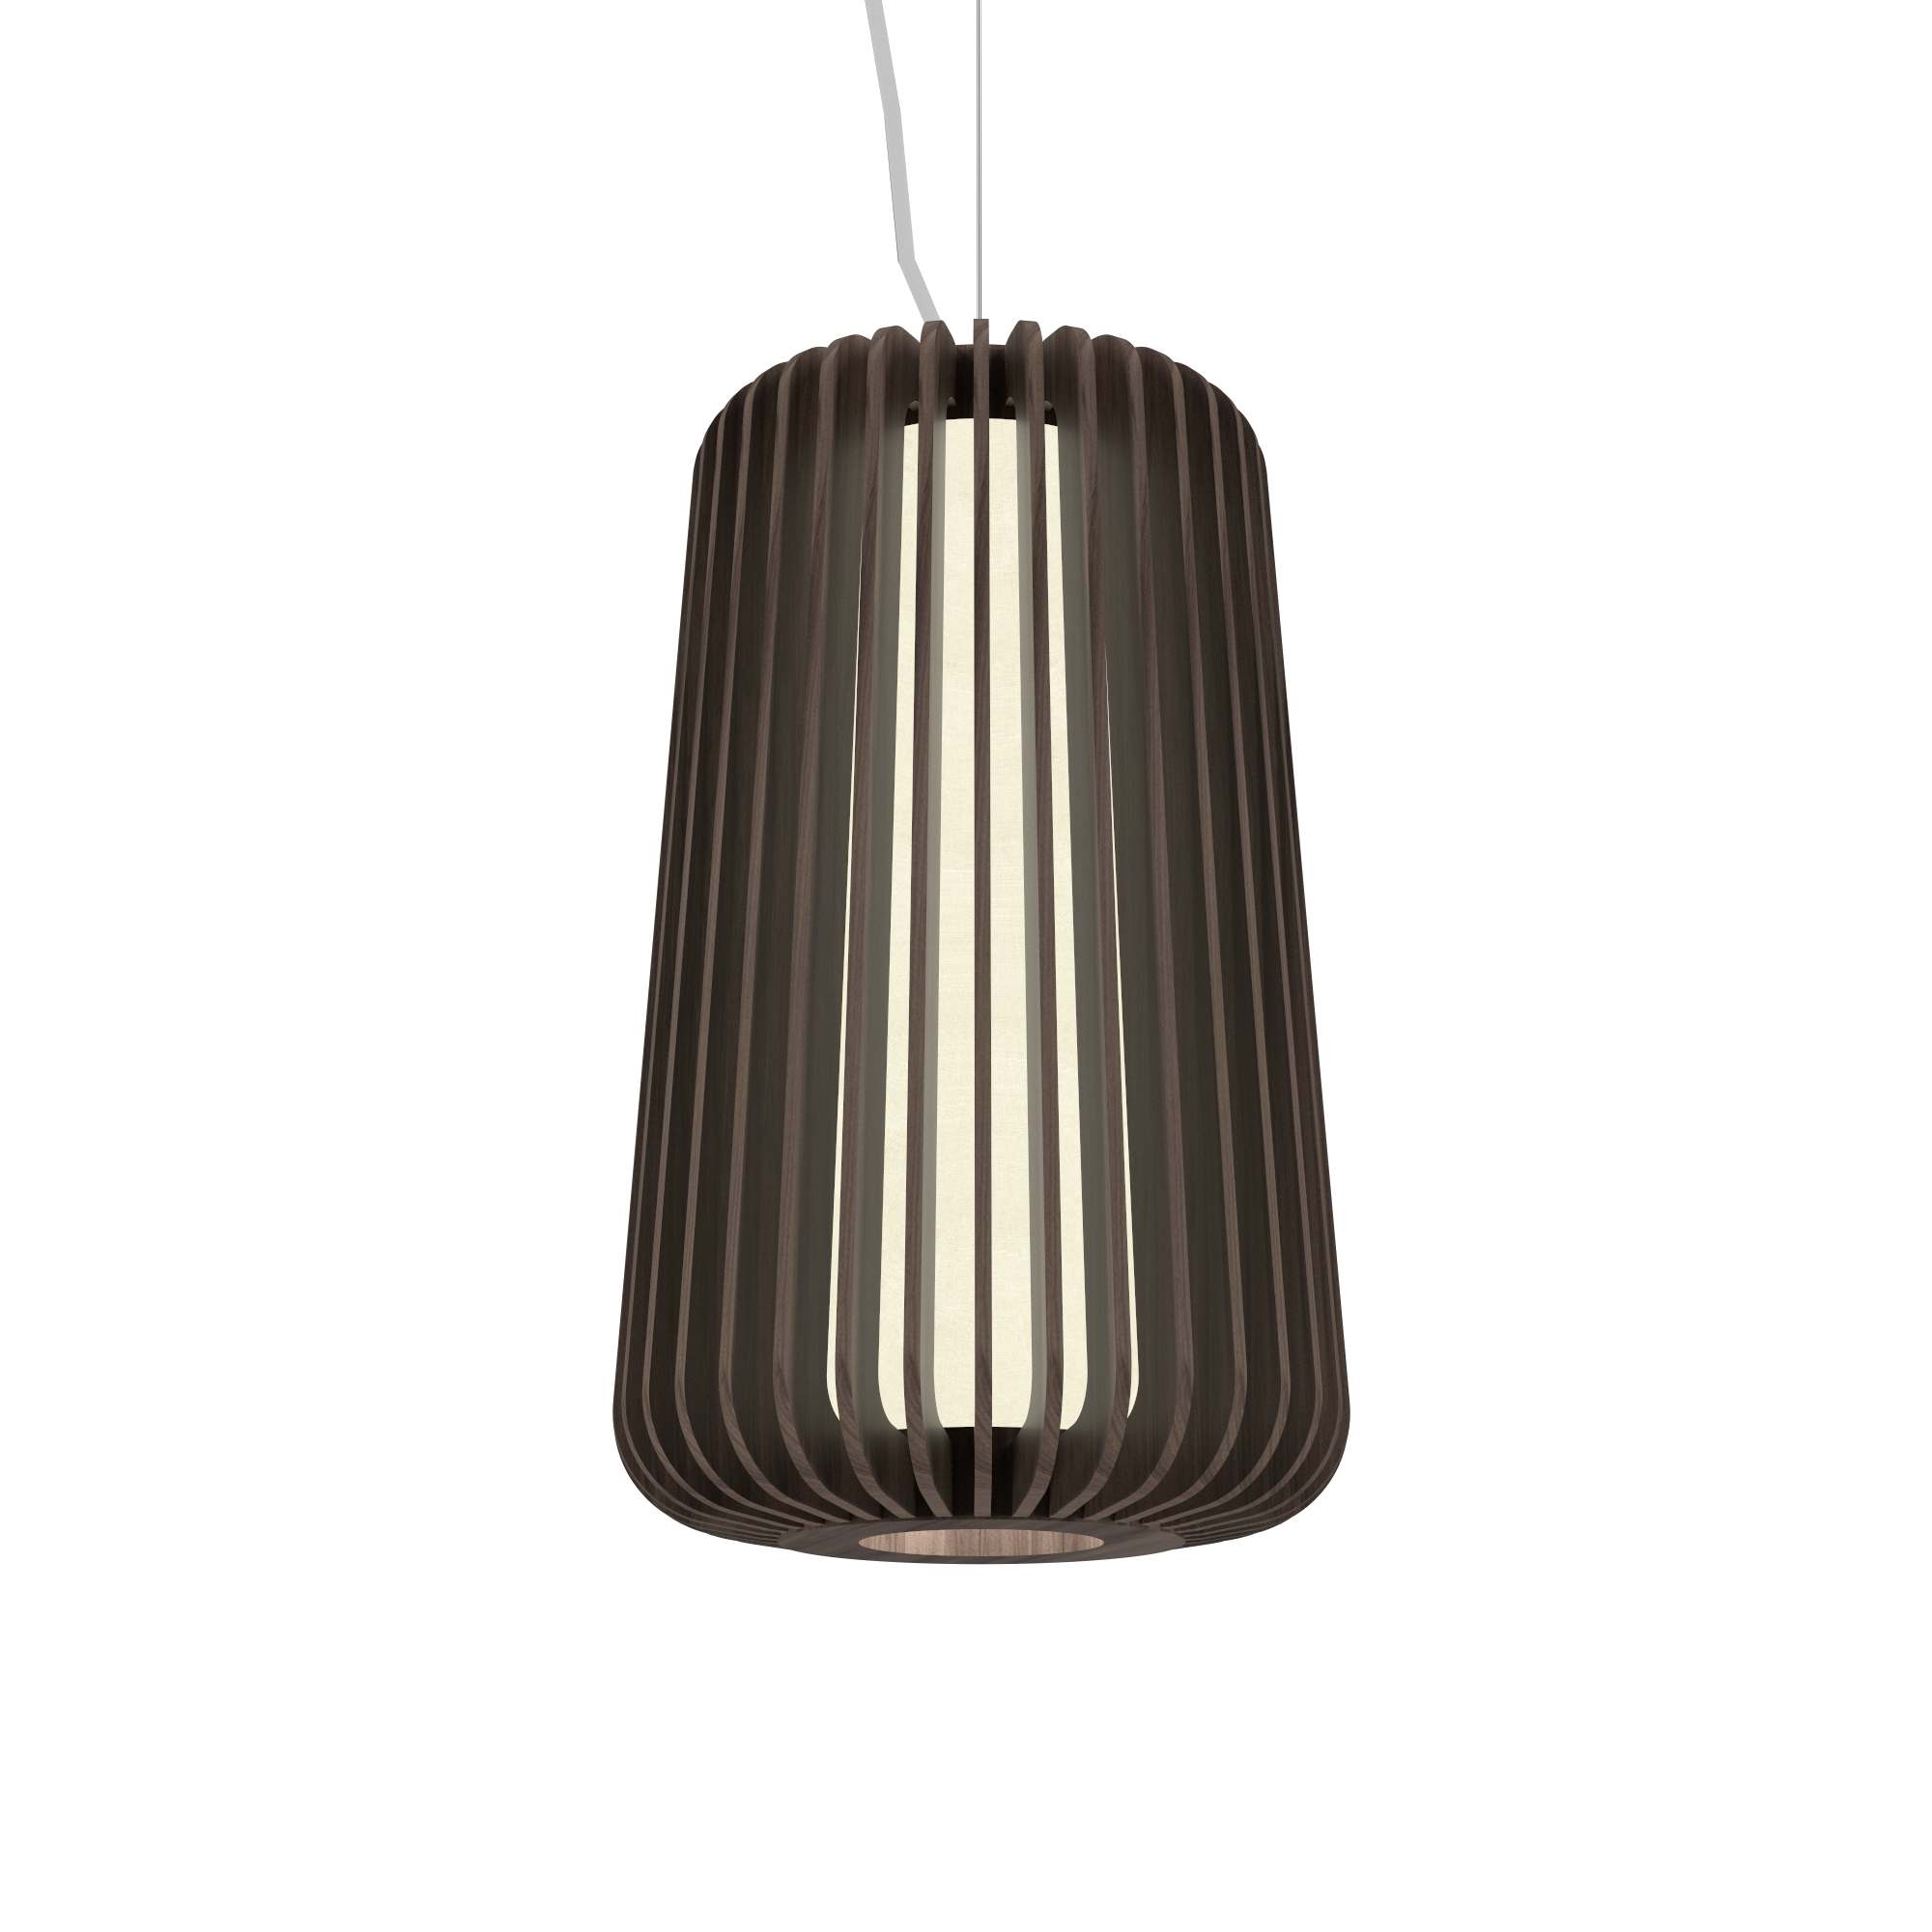 Pendant Lamp Accord Stecche Di Legno 1427 - Stecche Di Legno Line Accord Lighting | 18. American Walnut